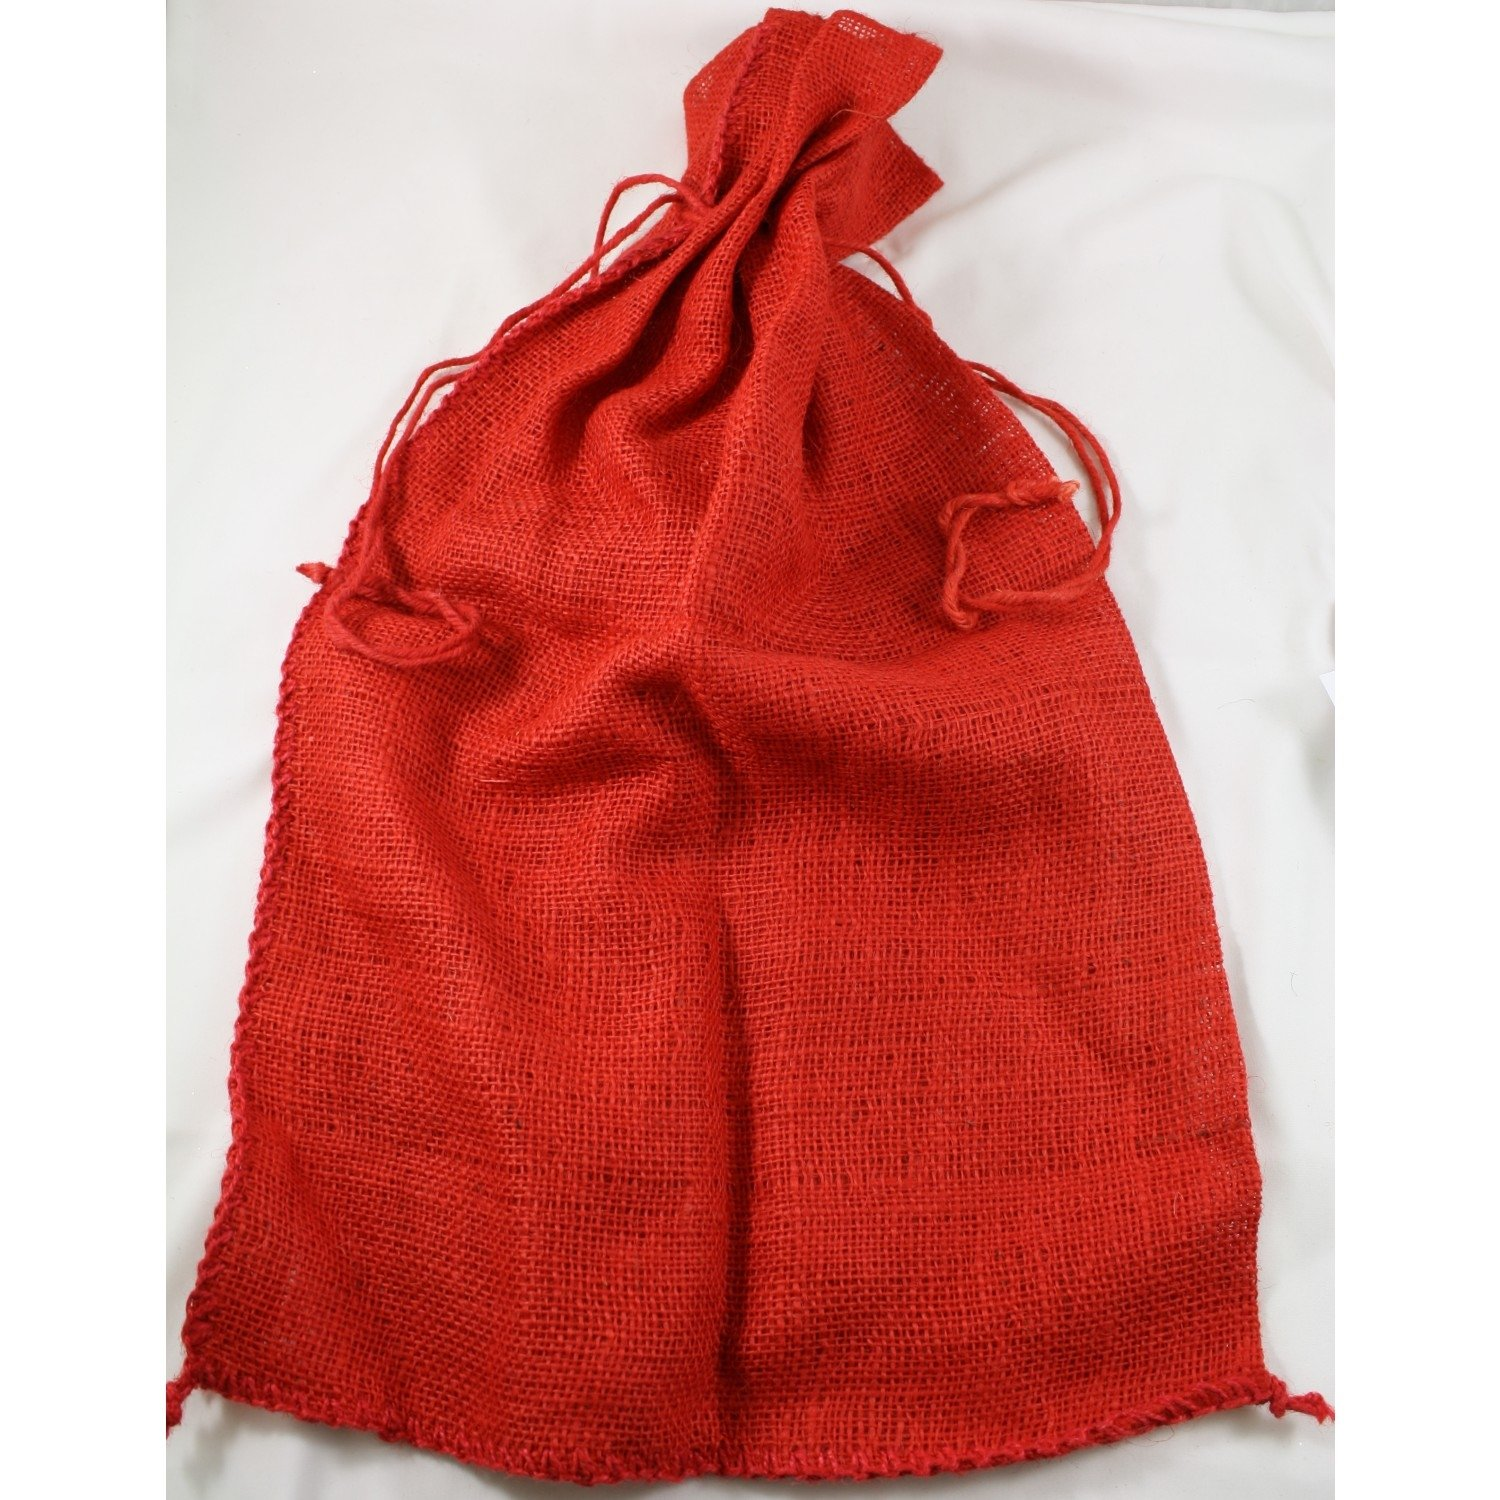 Kel-Toy Christmas and Everyday Gift Wrap & Crafting Jute Sacks in 3 Colors BUYERS' CHOICE (2, red) by Kel-Toy